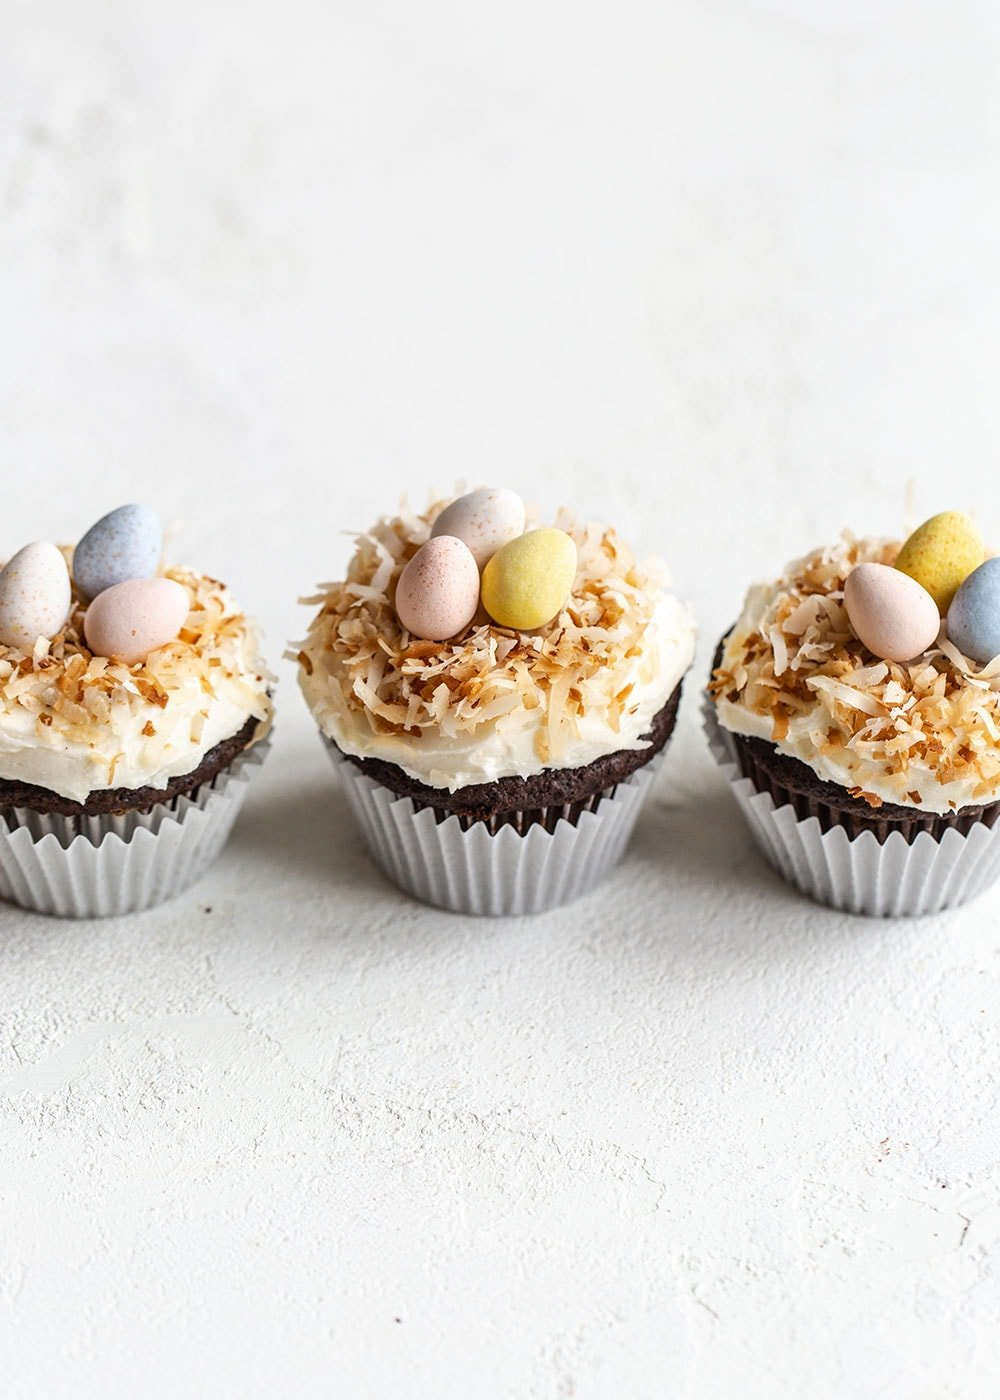 Row of three chocolate coconut cupcakes with Easter candies on top